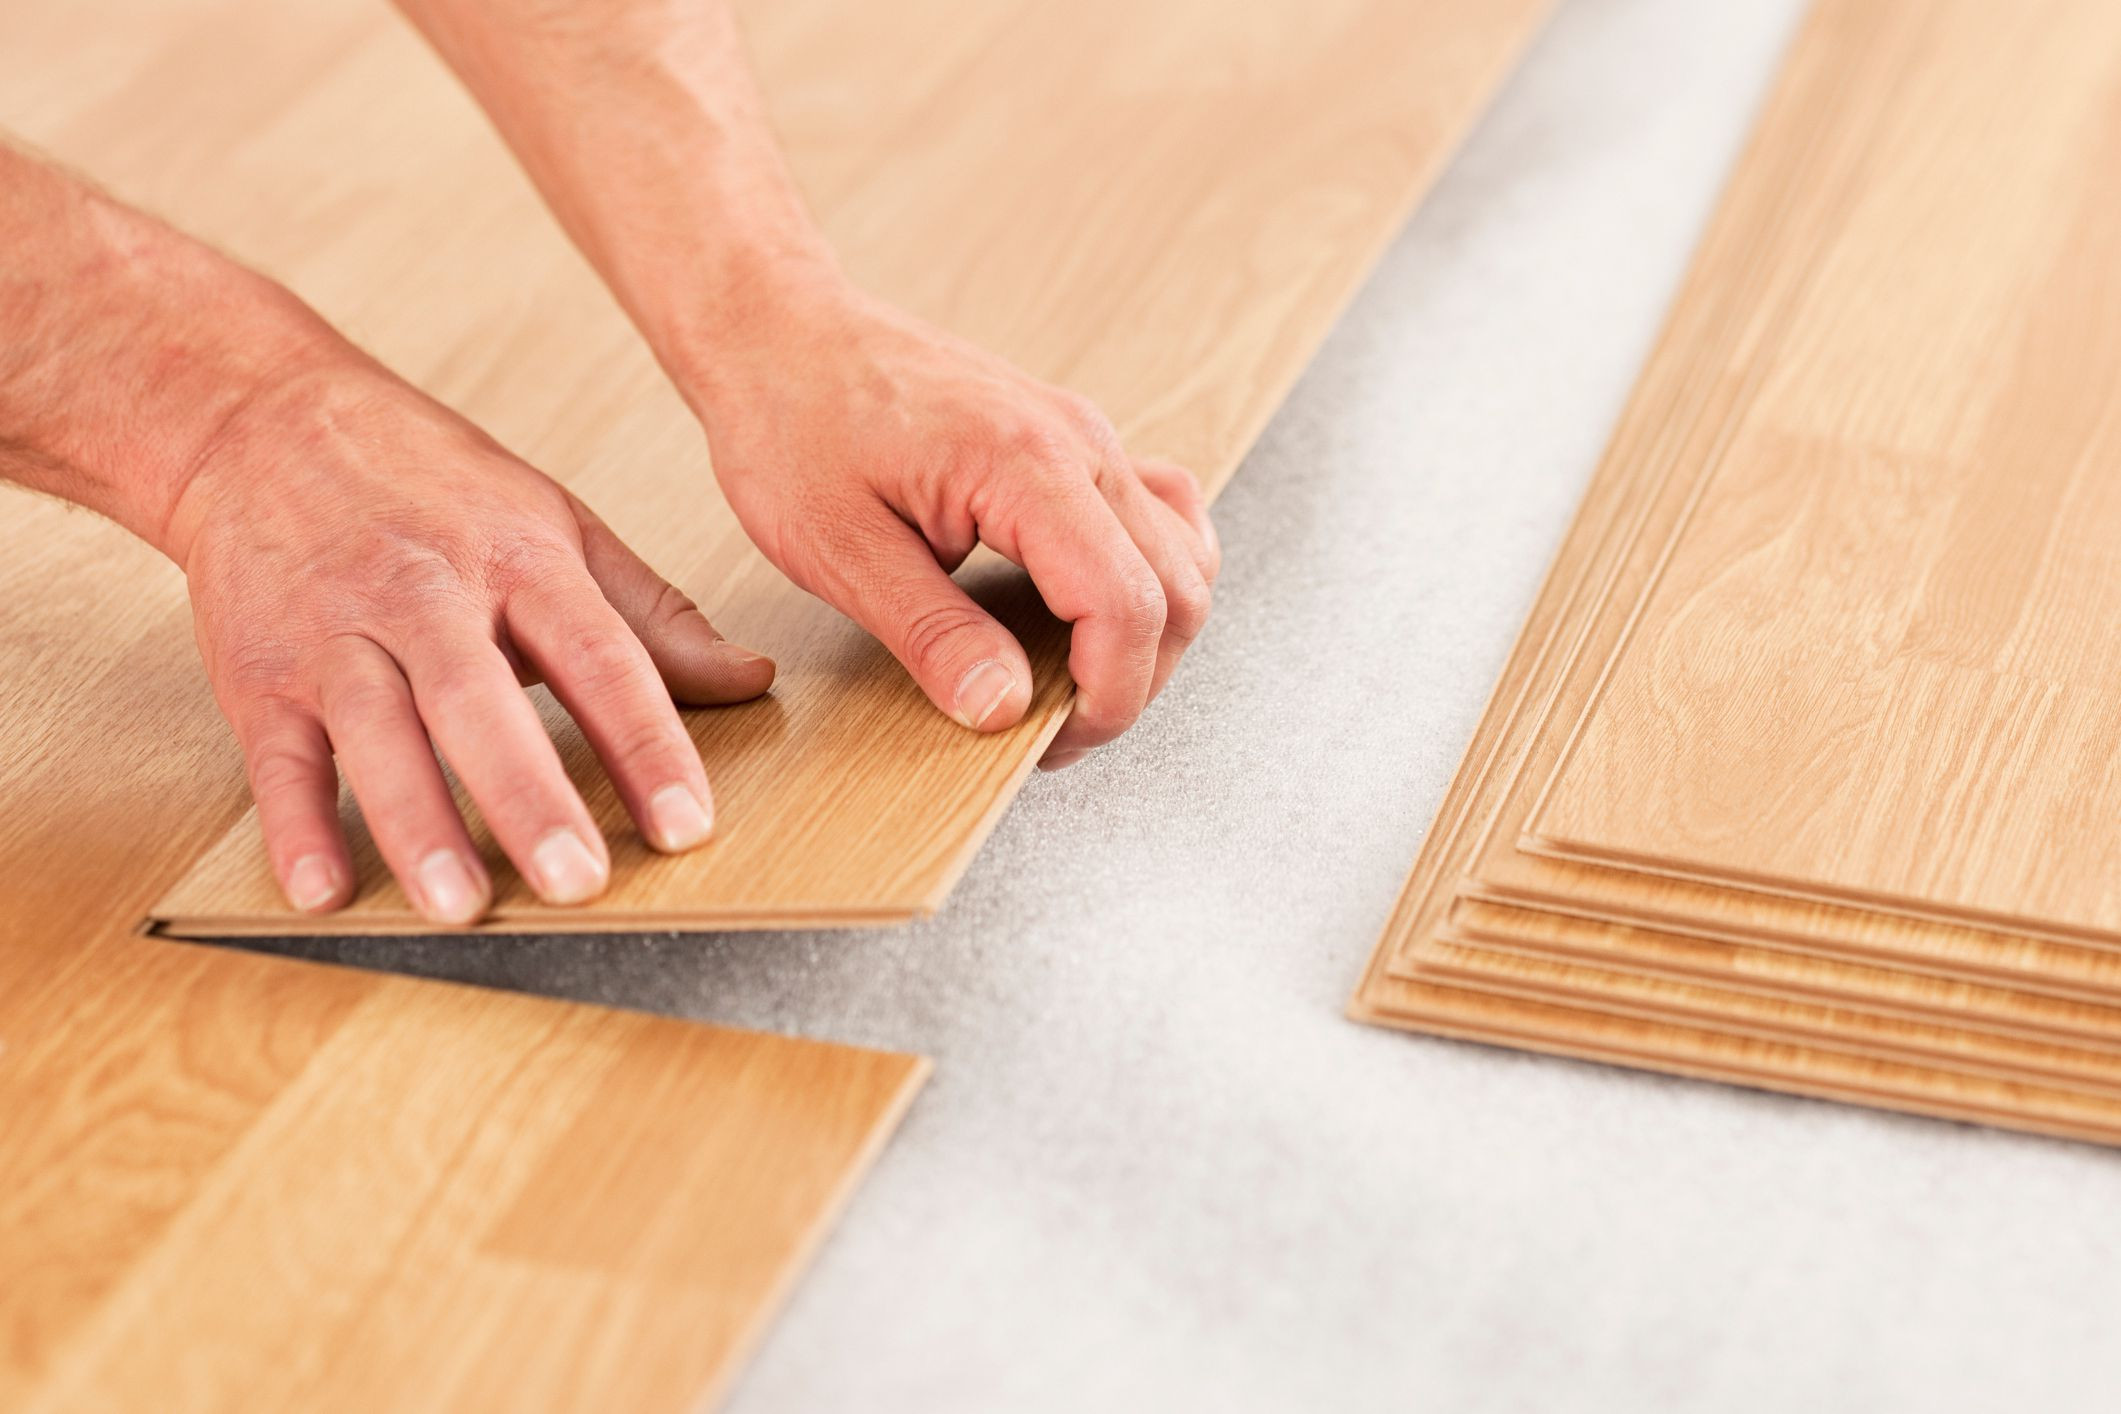 3 8 vs 1 2 inch engineered hardwood flooring of laminate underlayment pros and cons with laminate floor install gettyimages 154961561 588816495f9b58bdb3da1a02